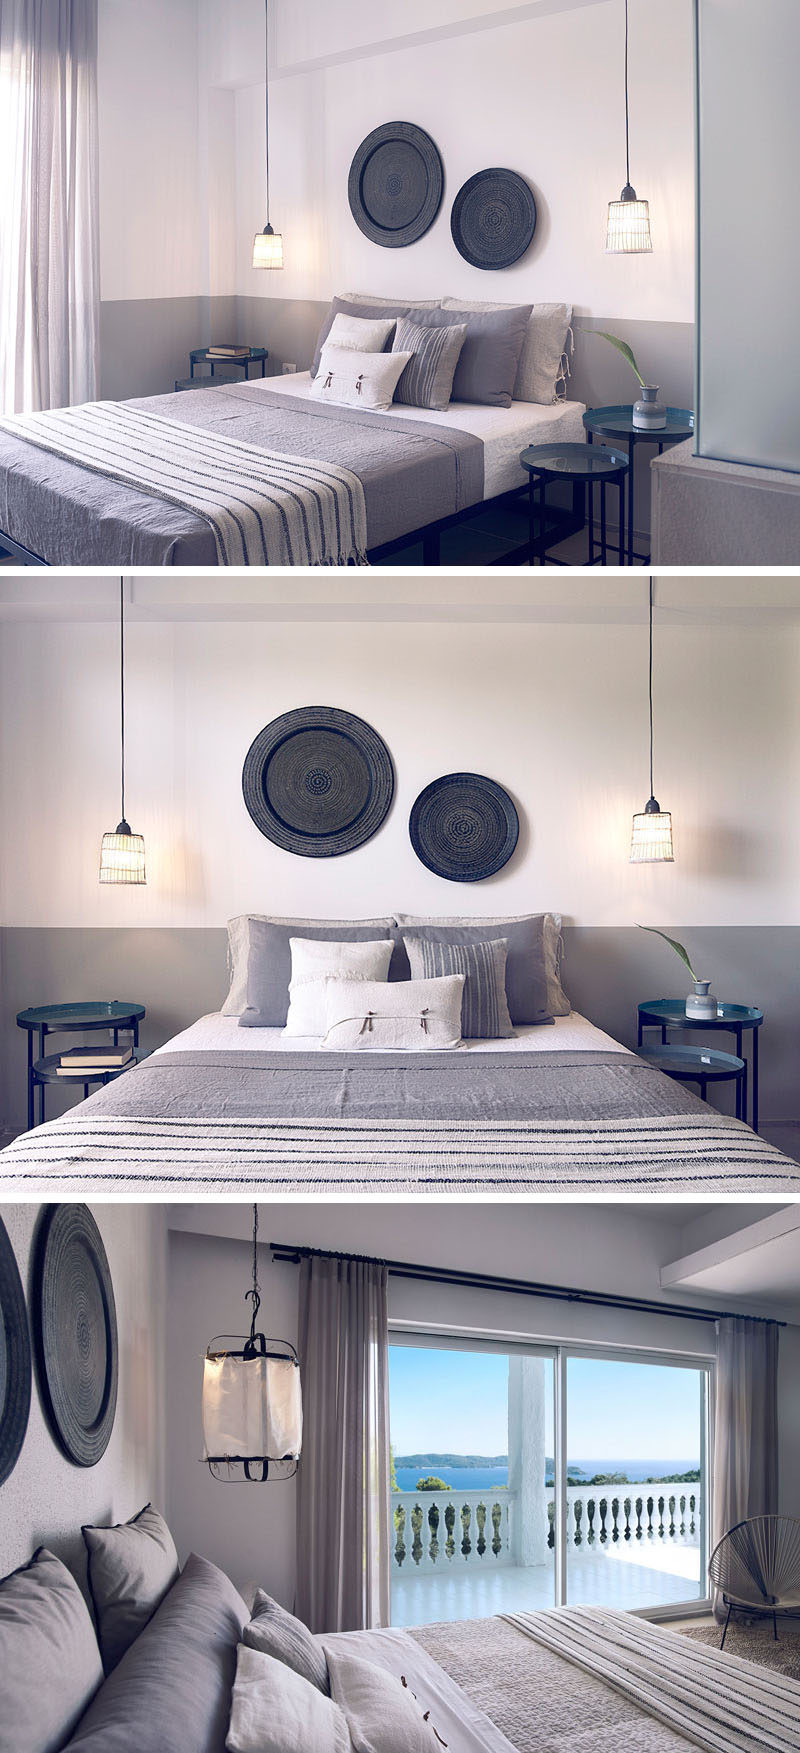 This modern hotel room from a hotel in Greece, has white walls with a lower grey stripe, decorative floor tiles, wall decor and glass room dividers separating the bathroom from the bedroom to create a Mediterranean style interior.